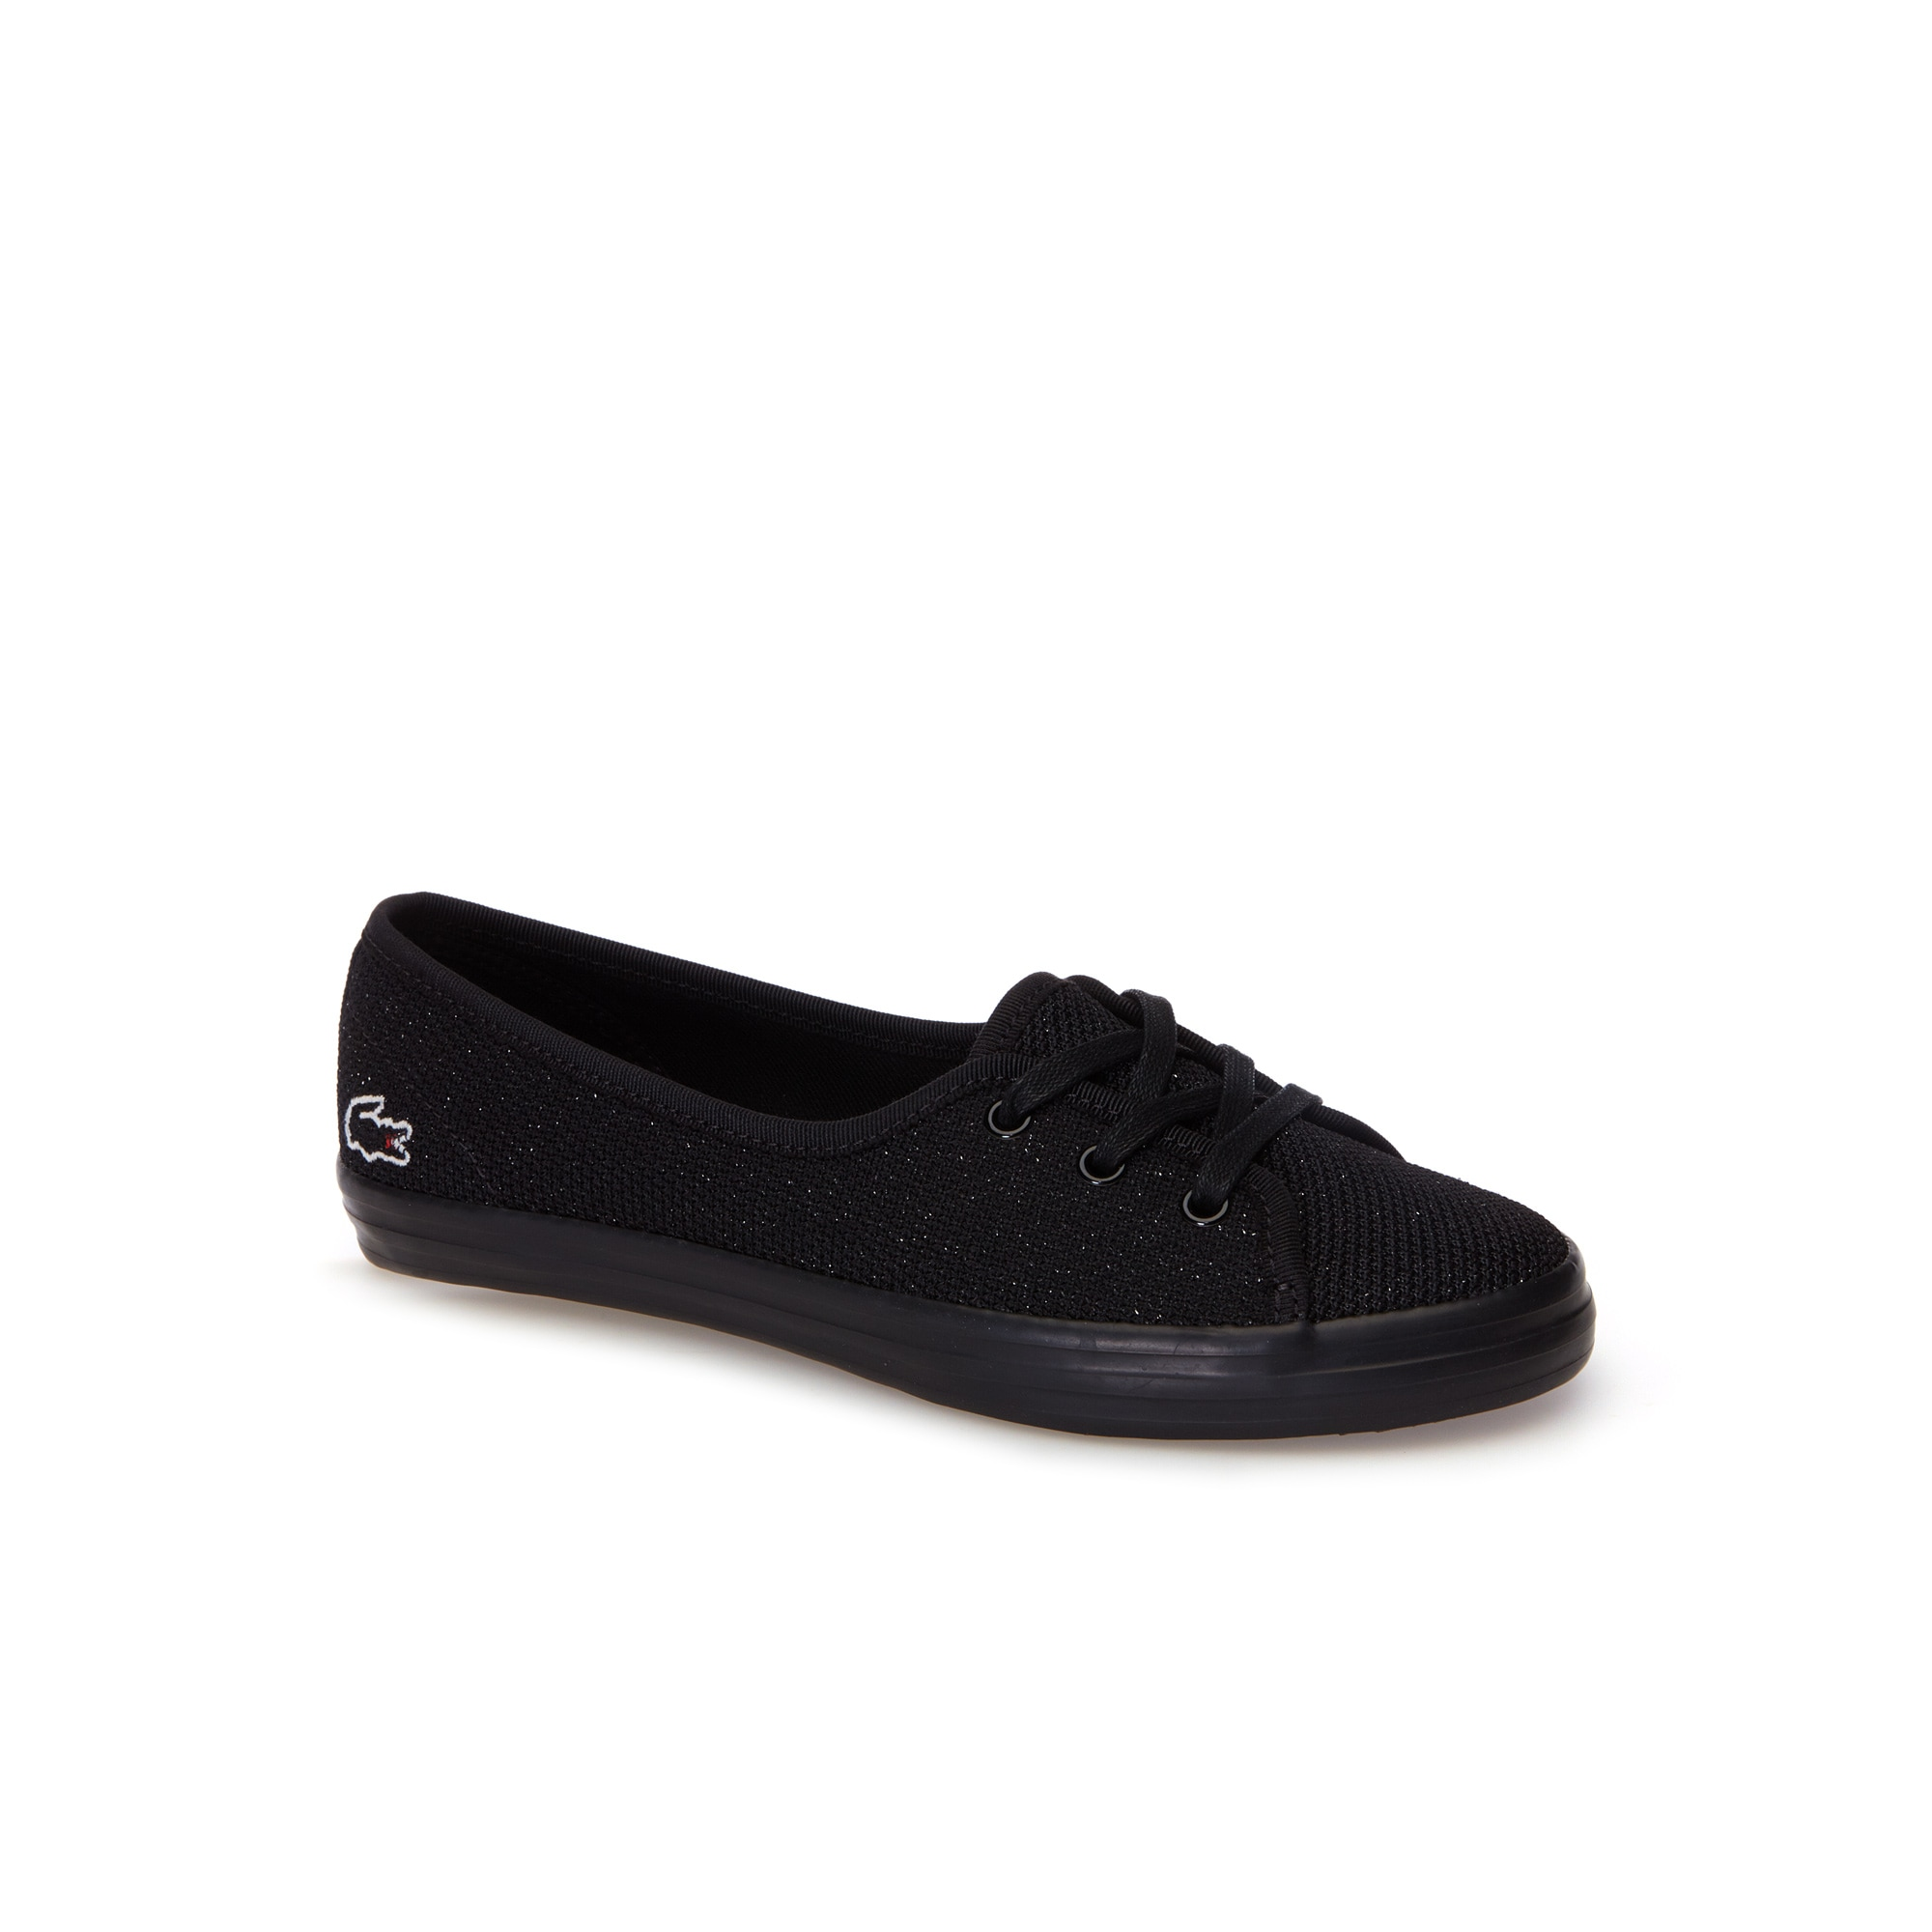 01434bfe3fb Chaussures Chaussures Collection Collection Femme Lacoste Chaussures Lacoste  Femme fHZqxwRC